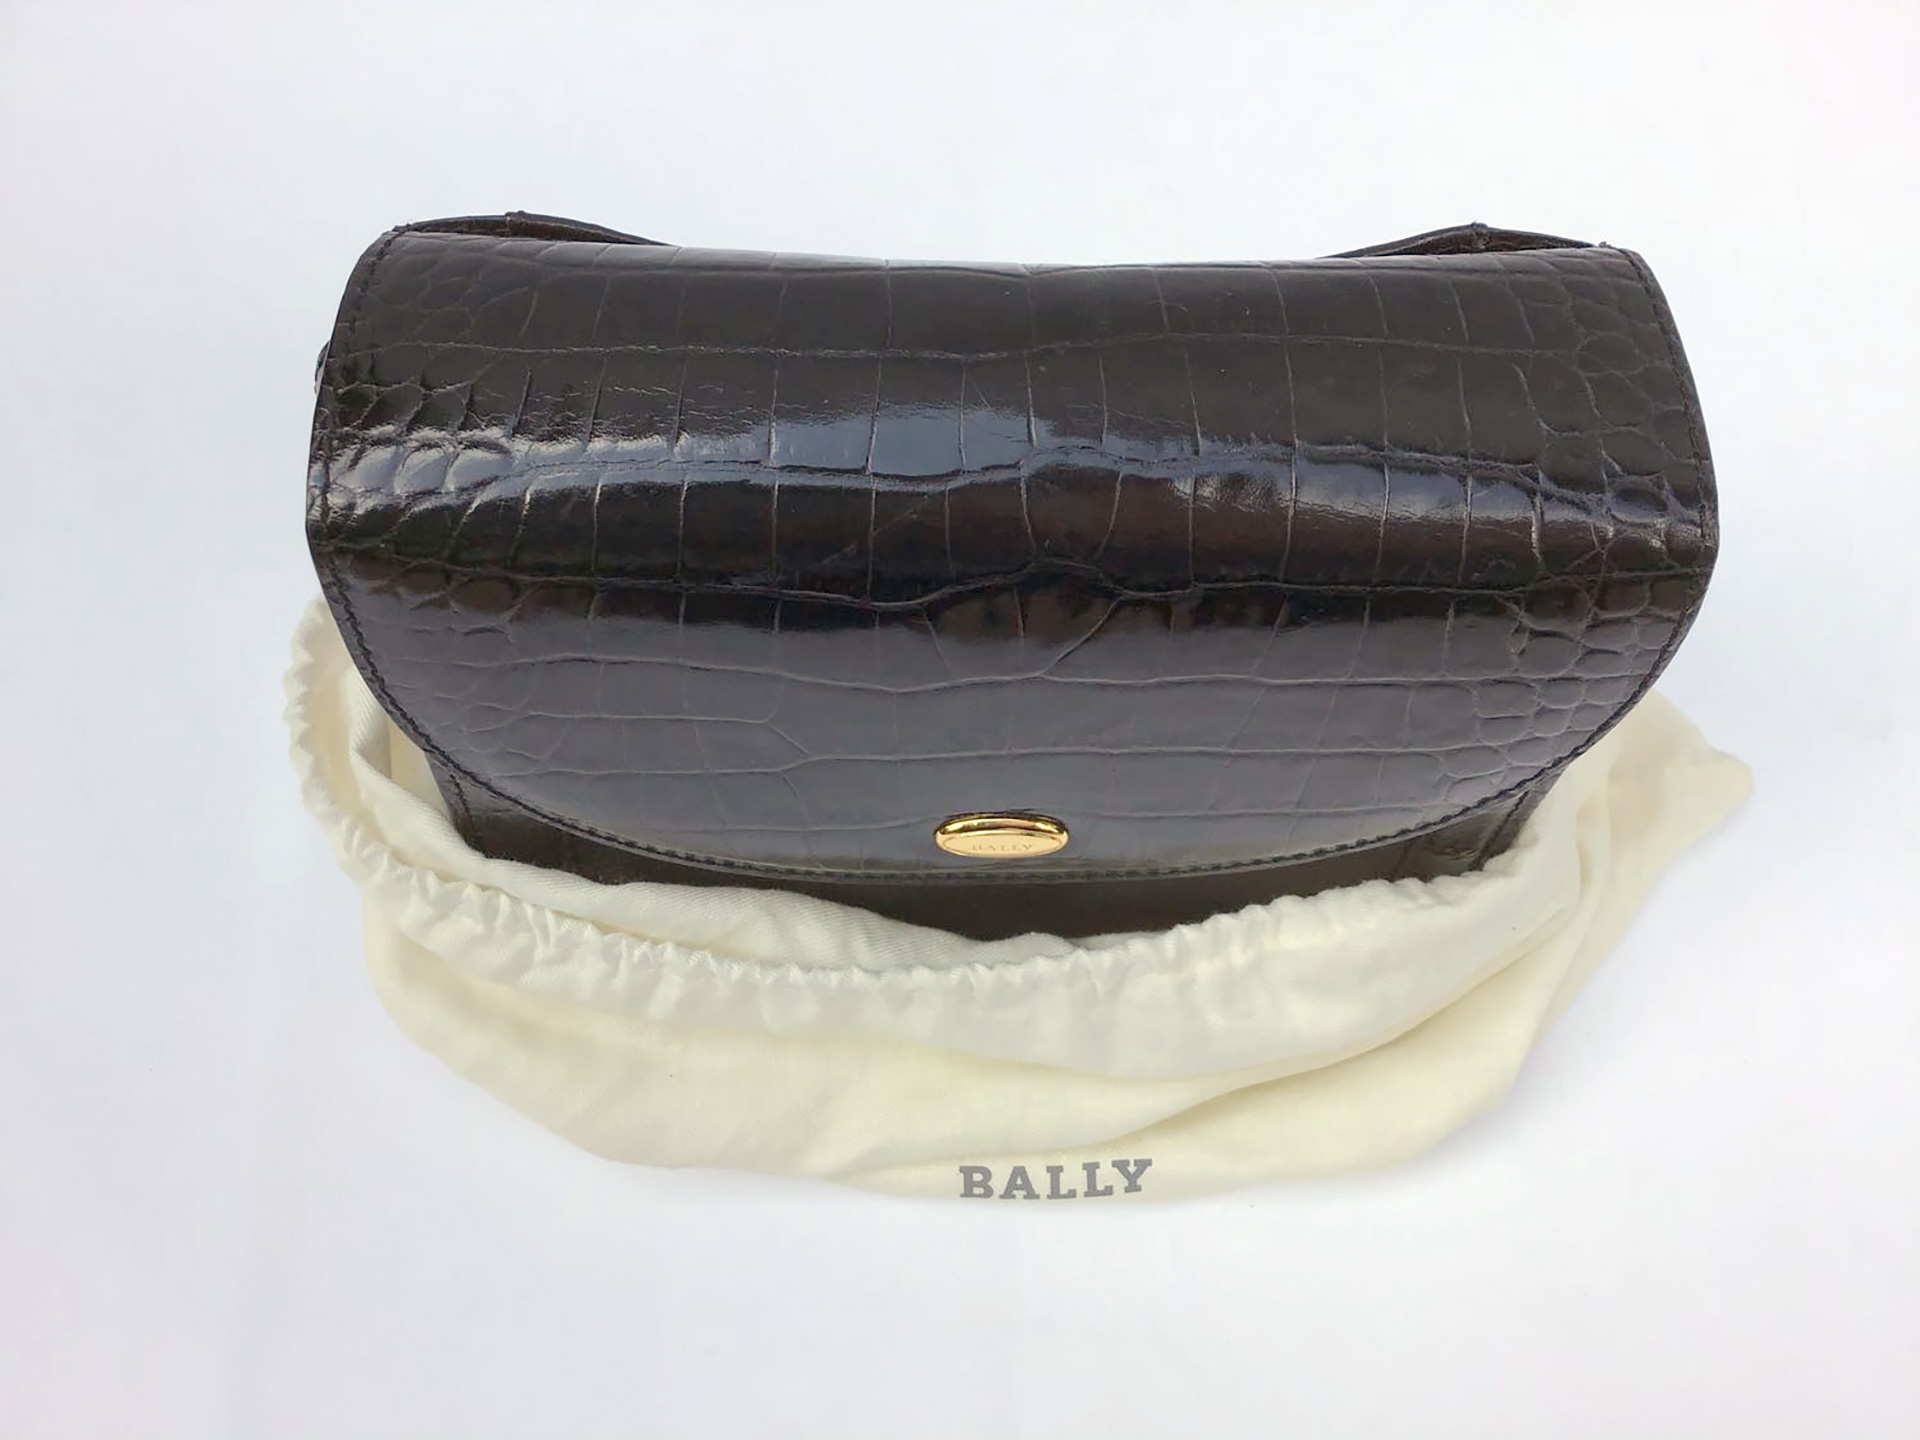 the-history-heritage-and-timeless-heirlooms-of-harry-p-archinal-7-ballys-crocodile-leather-purse